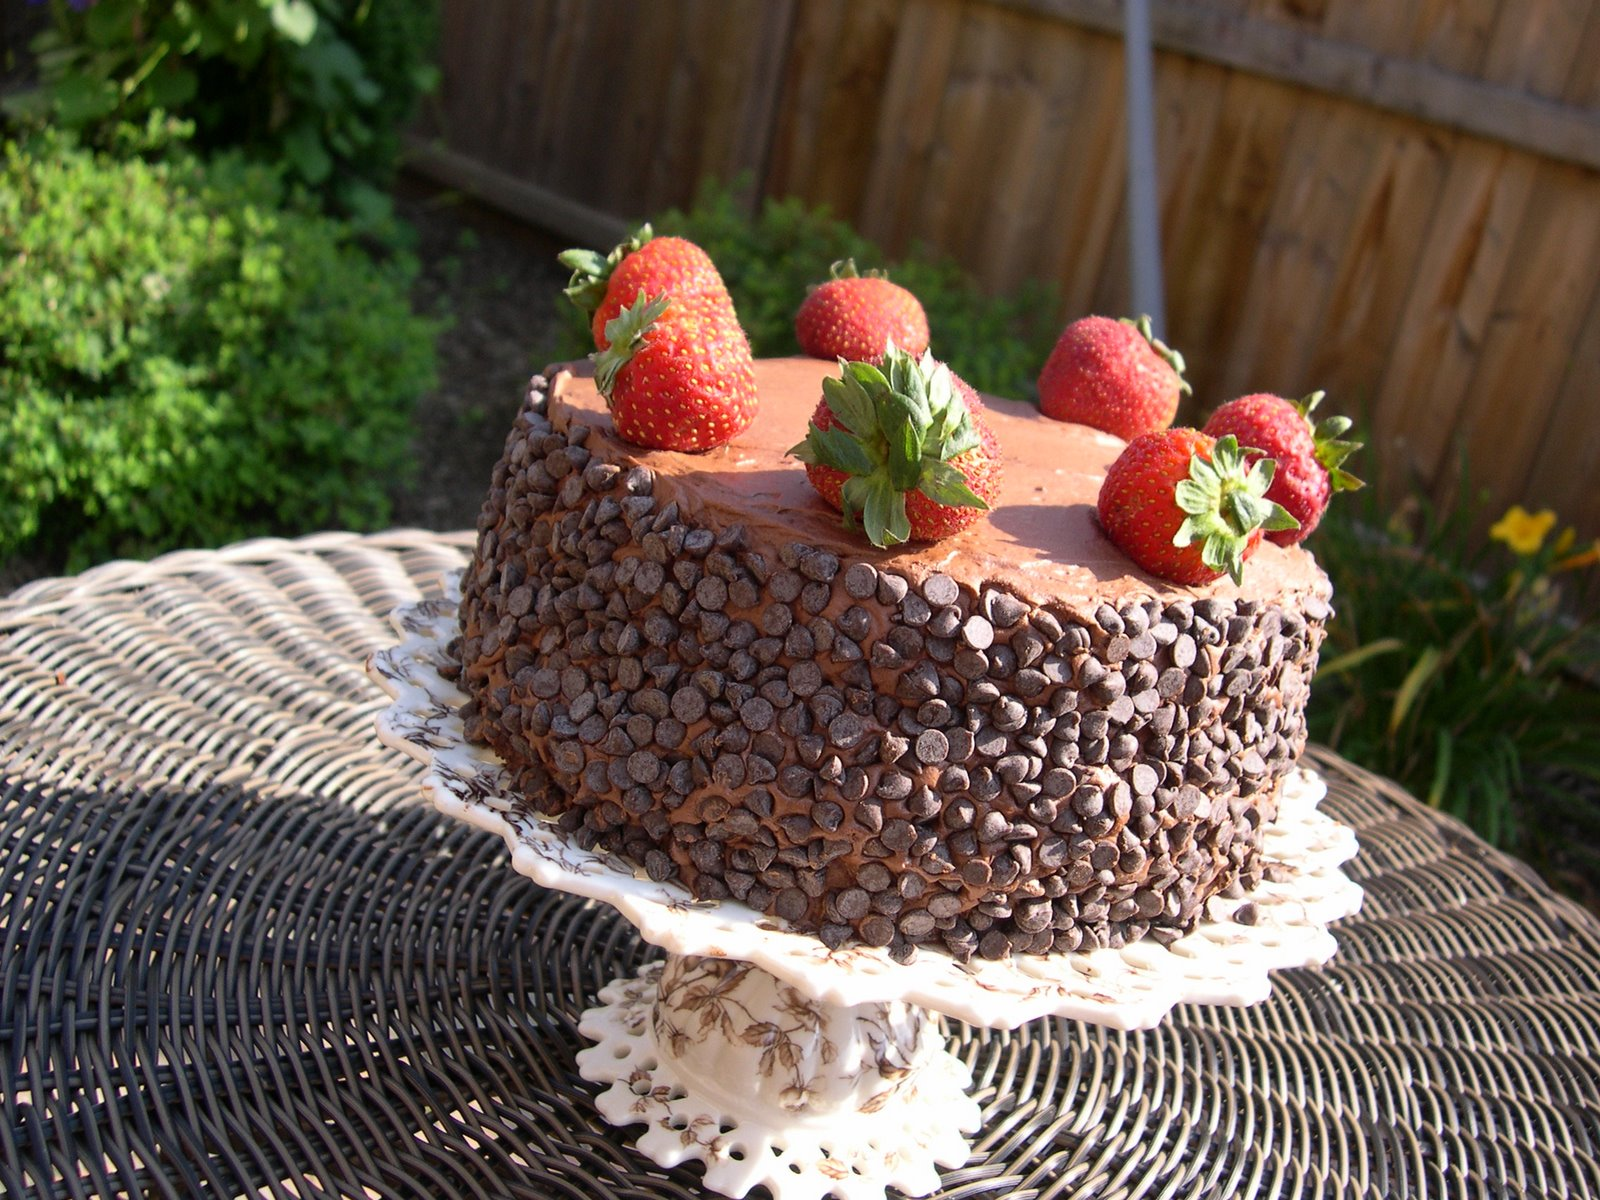 Order a cake bliss chocolate cakes - Ode To Chocolate Day